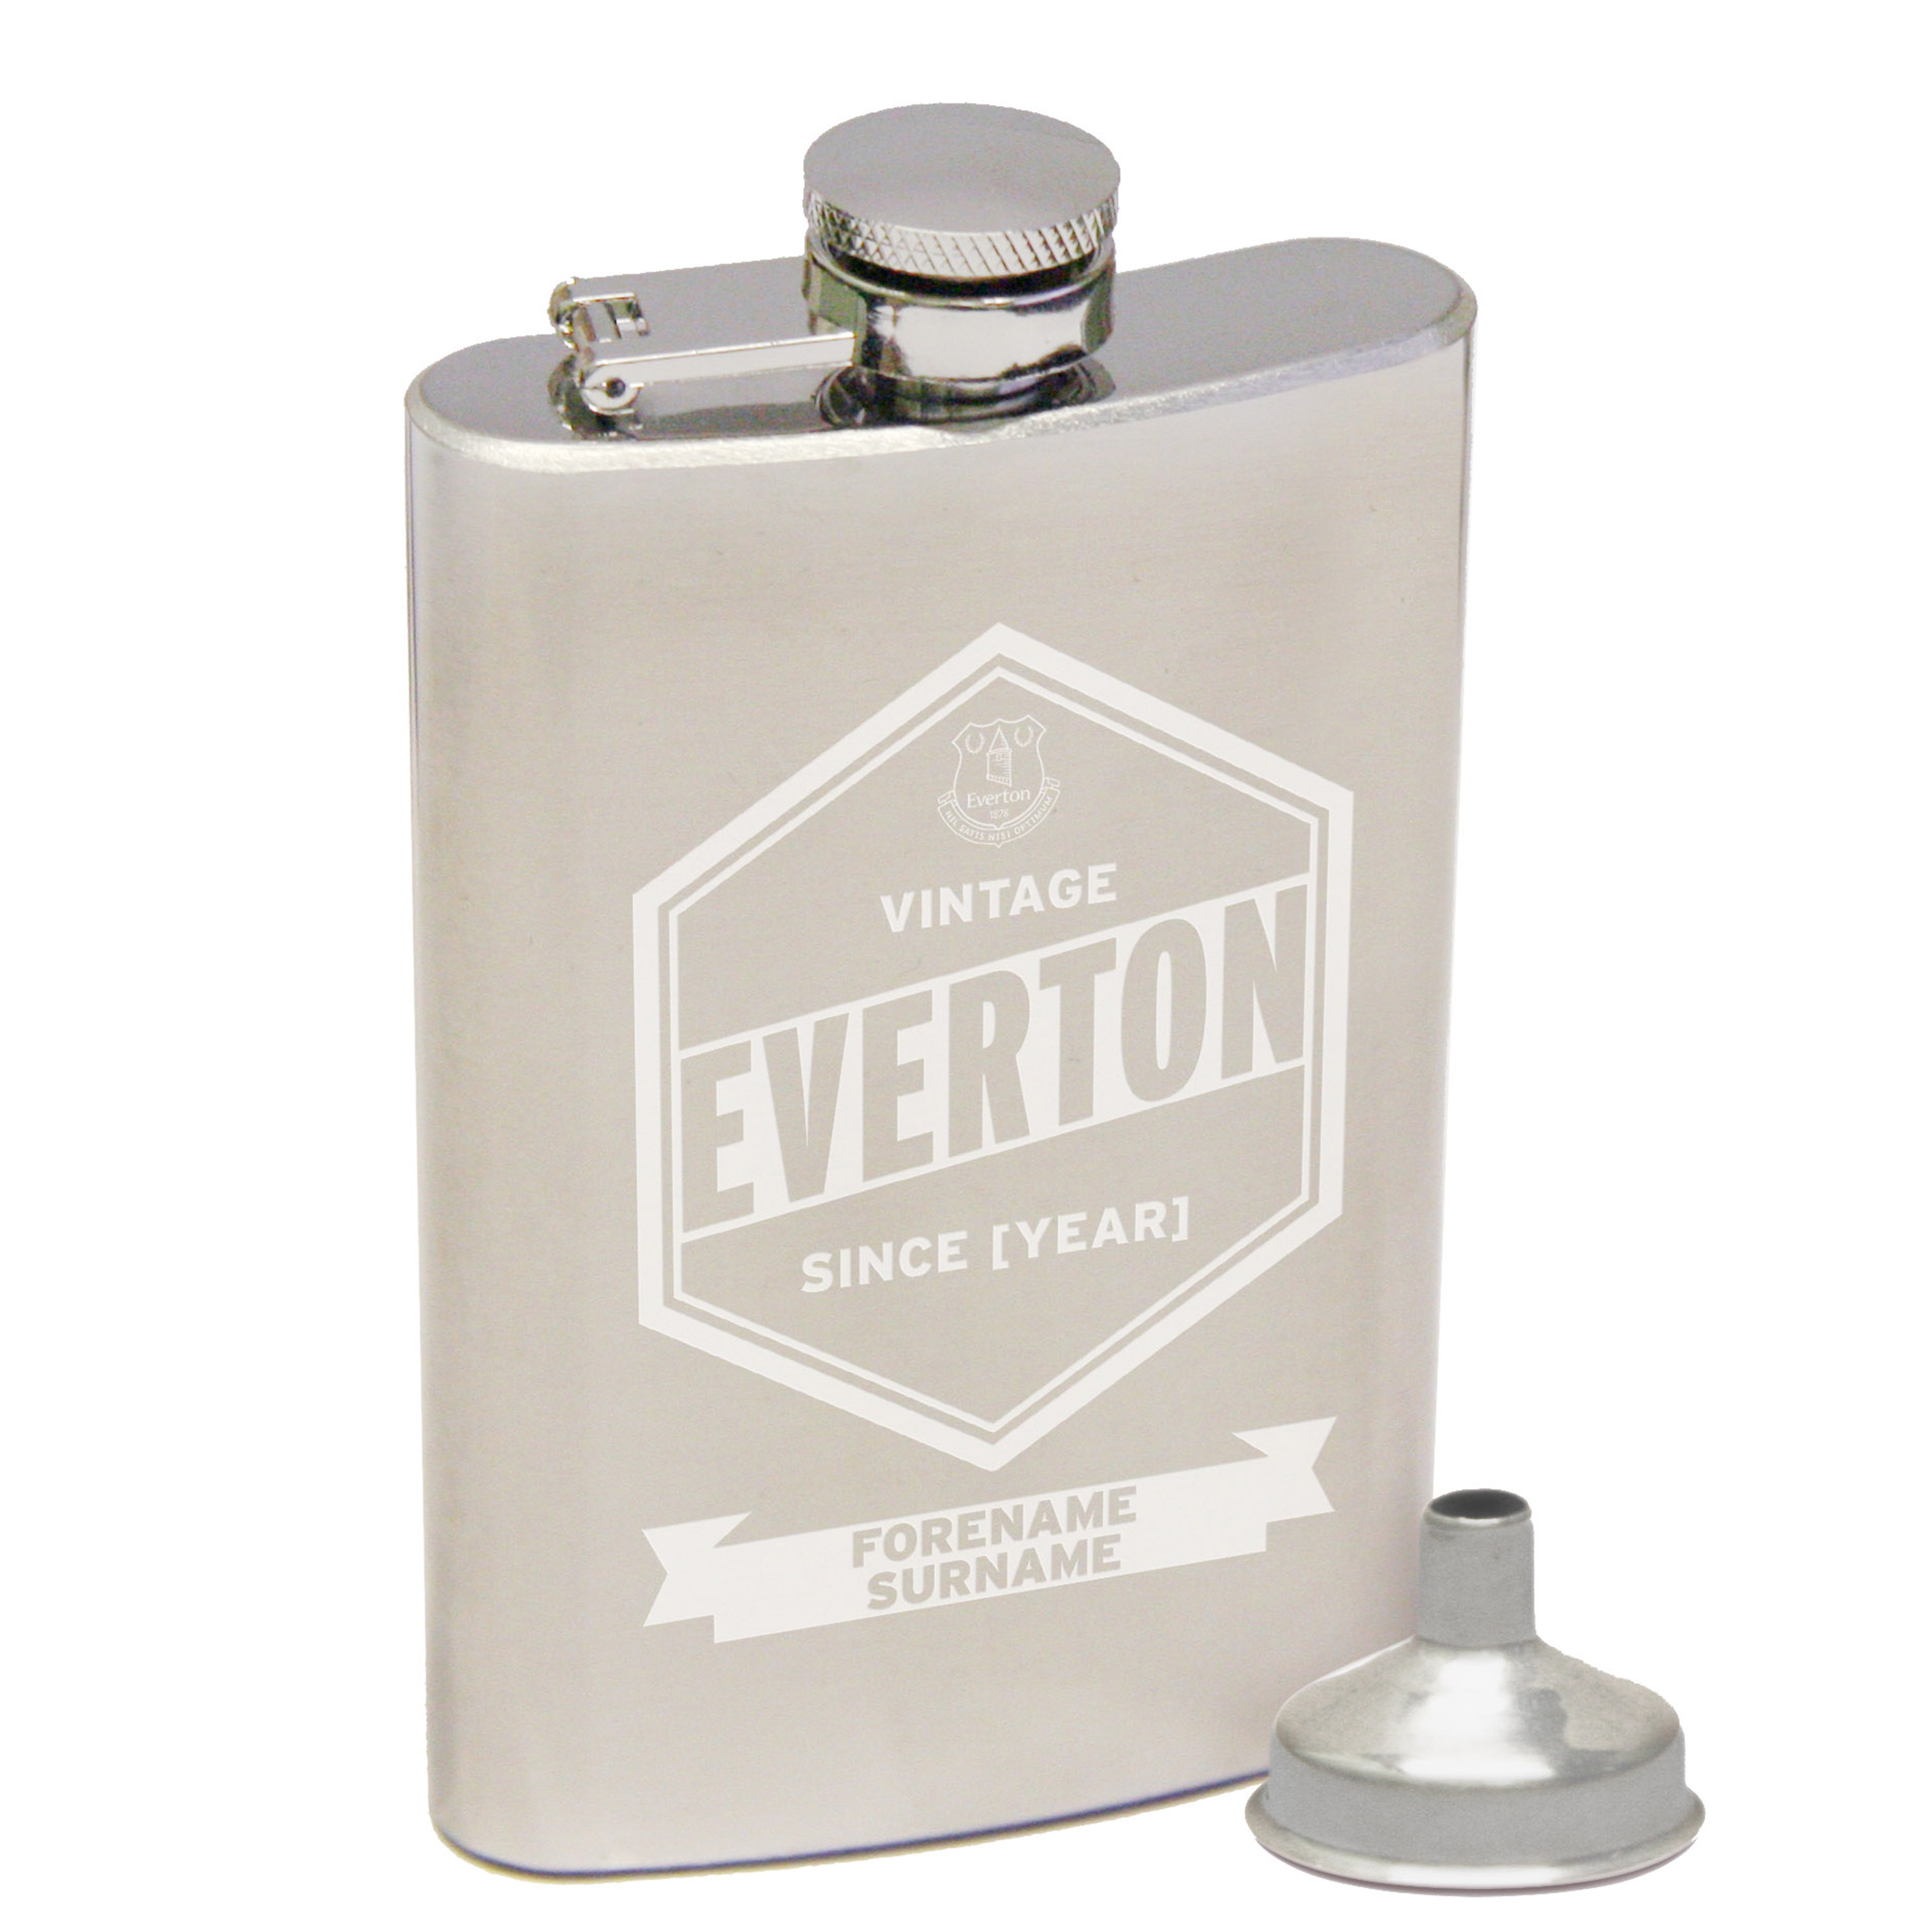 Everton Personalised Vintage Hip Flask 2oz